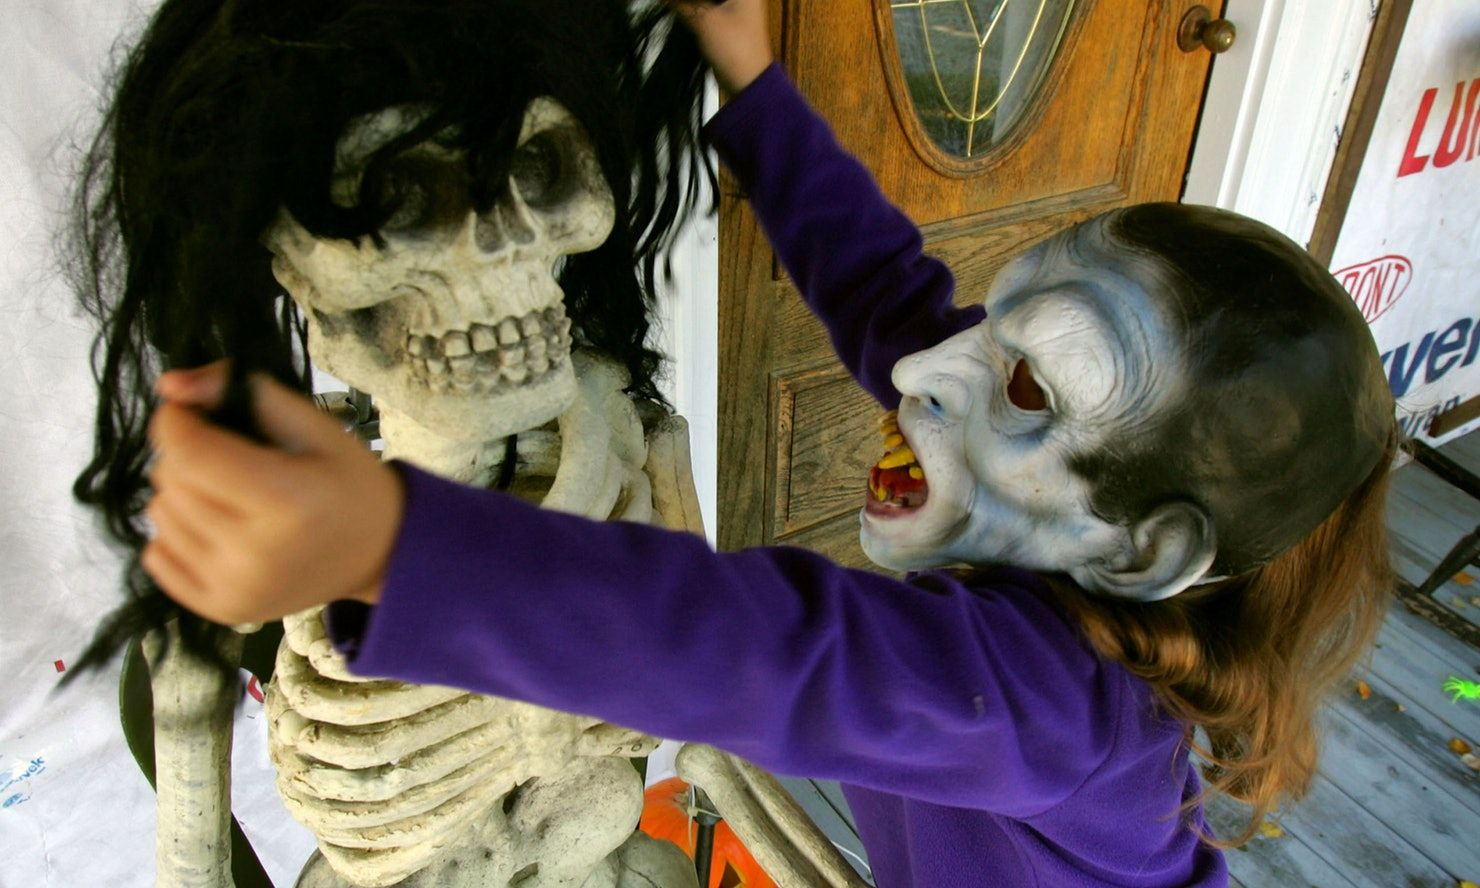 7 Halloween Decoration DIYs That Are Truly Scary Halloween diy - diy halloween decorations scary